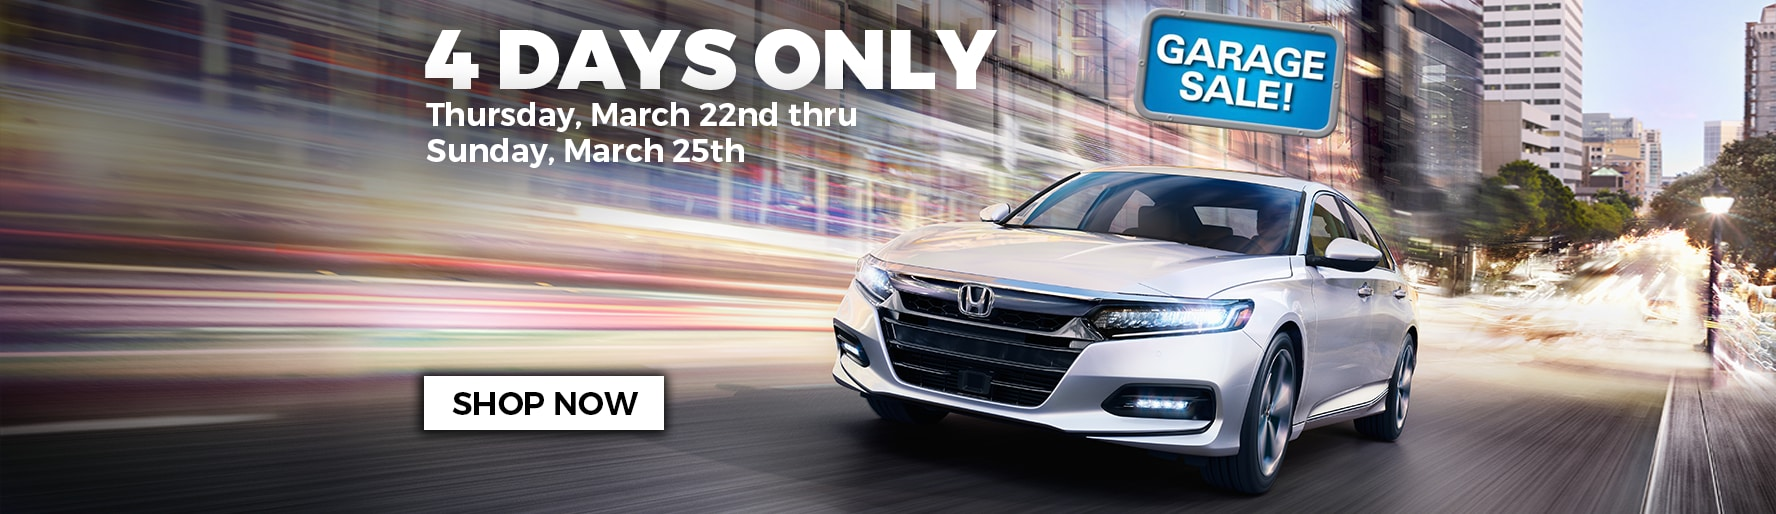 Crown honda of greensboro new used car dealer serving high from our lot to your driveway 1betcityfo Choice Image